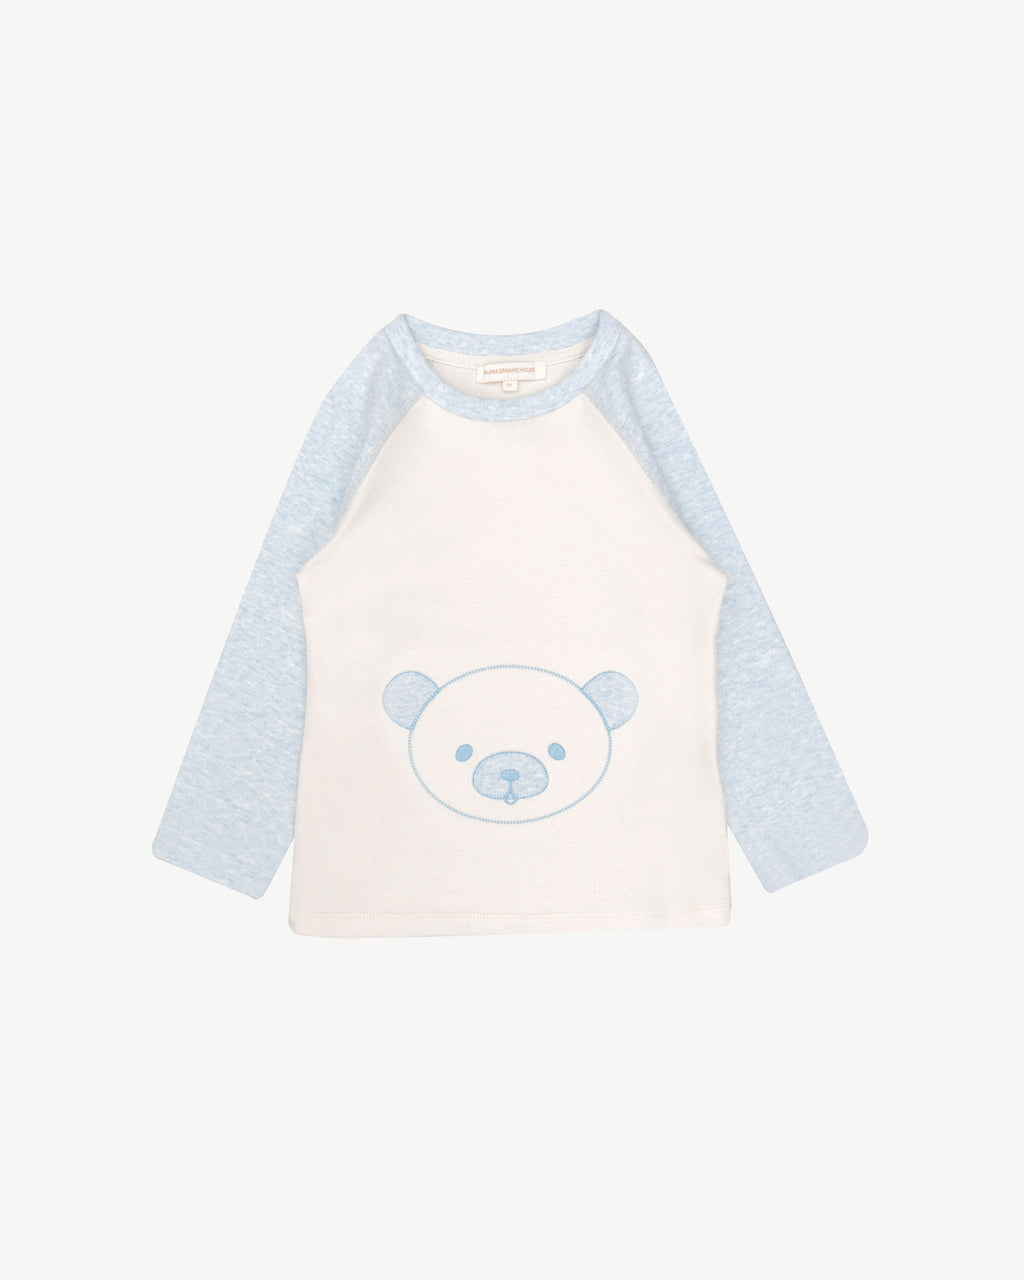 LOVING BEAR T-SHIRT